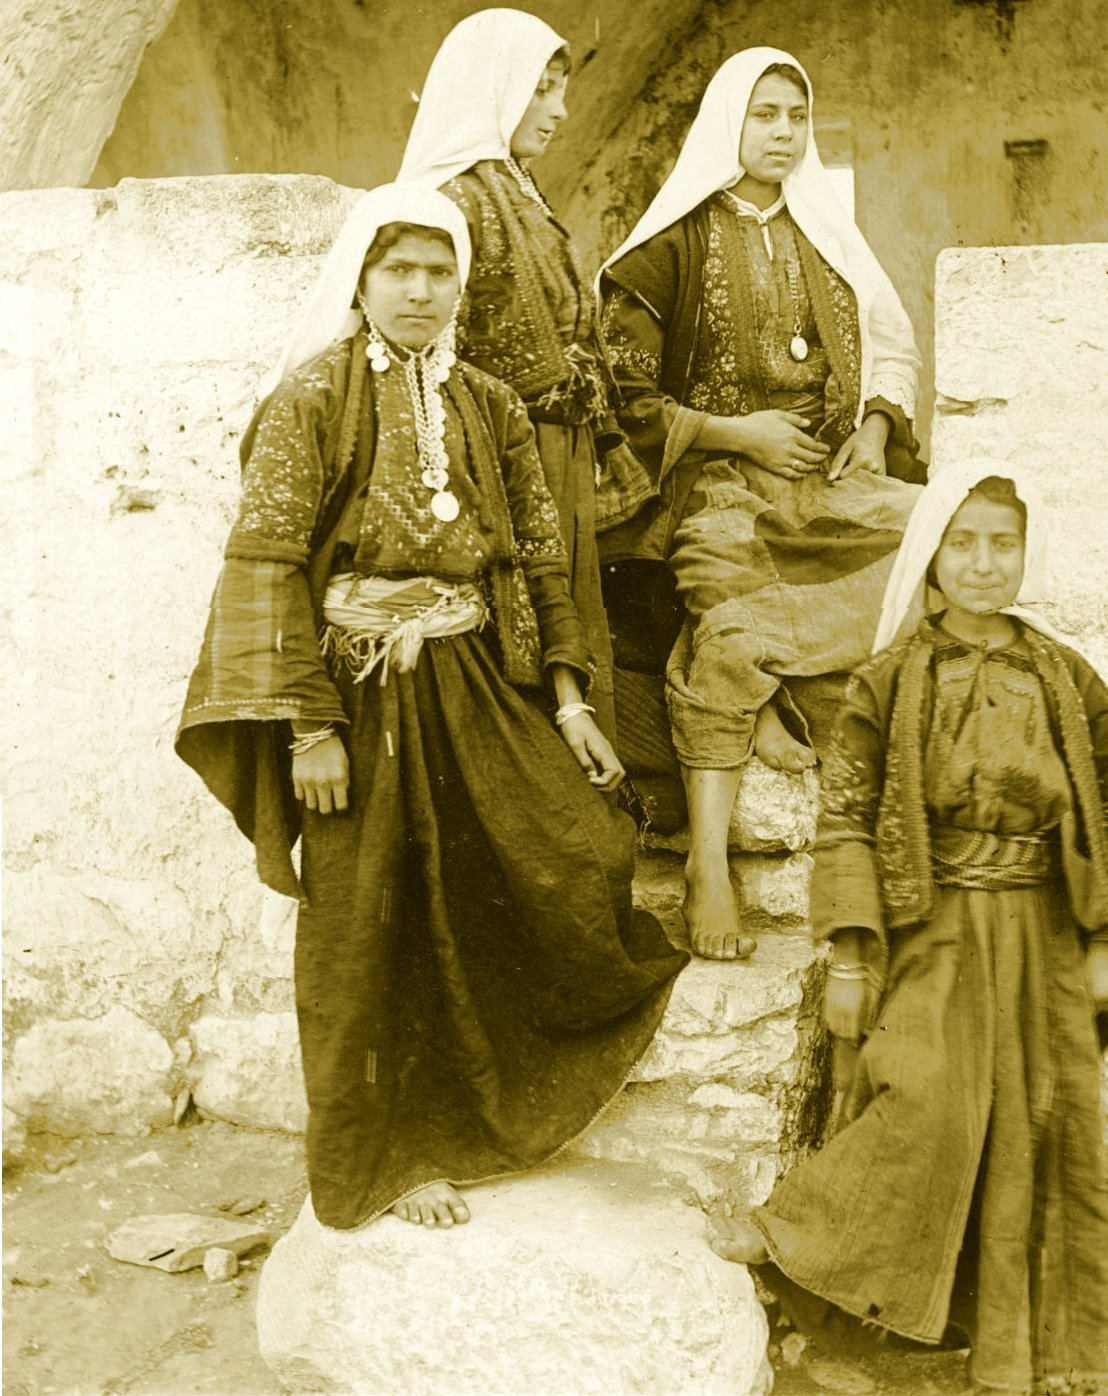 Bethlehem - بيت لحم : Women of Bethlehem 146 (late 19th, early 20th c.) (Per Reem Ackall)